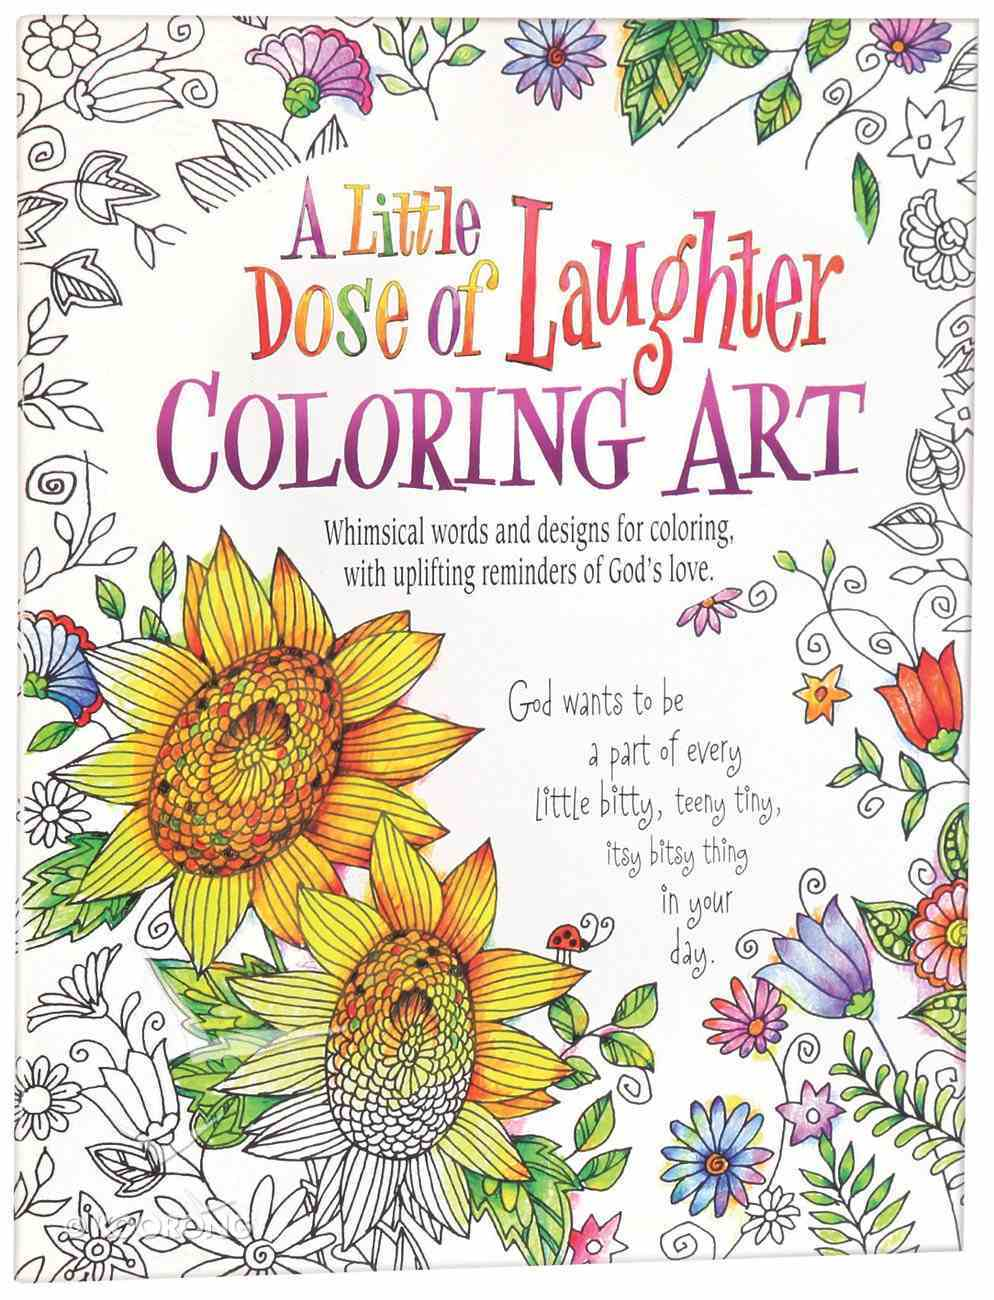 A Little Dose of Laughter Coloring Art (Adult Coloring Books Series) Paperback